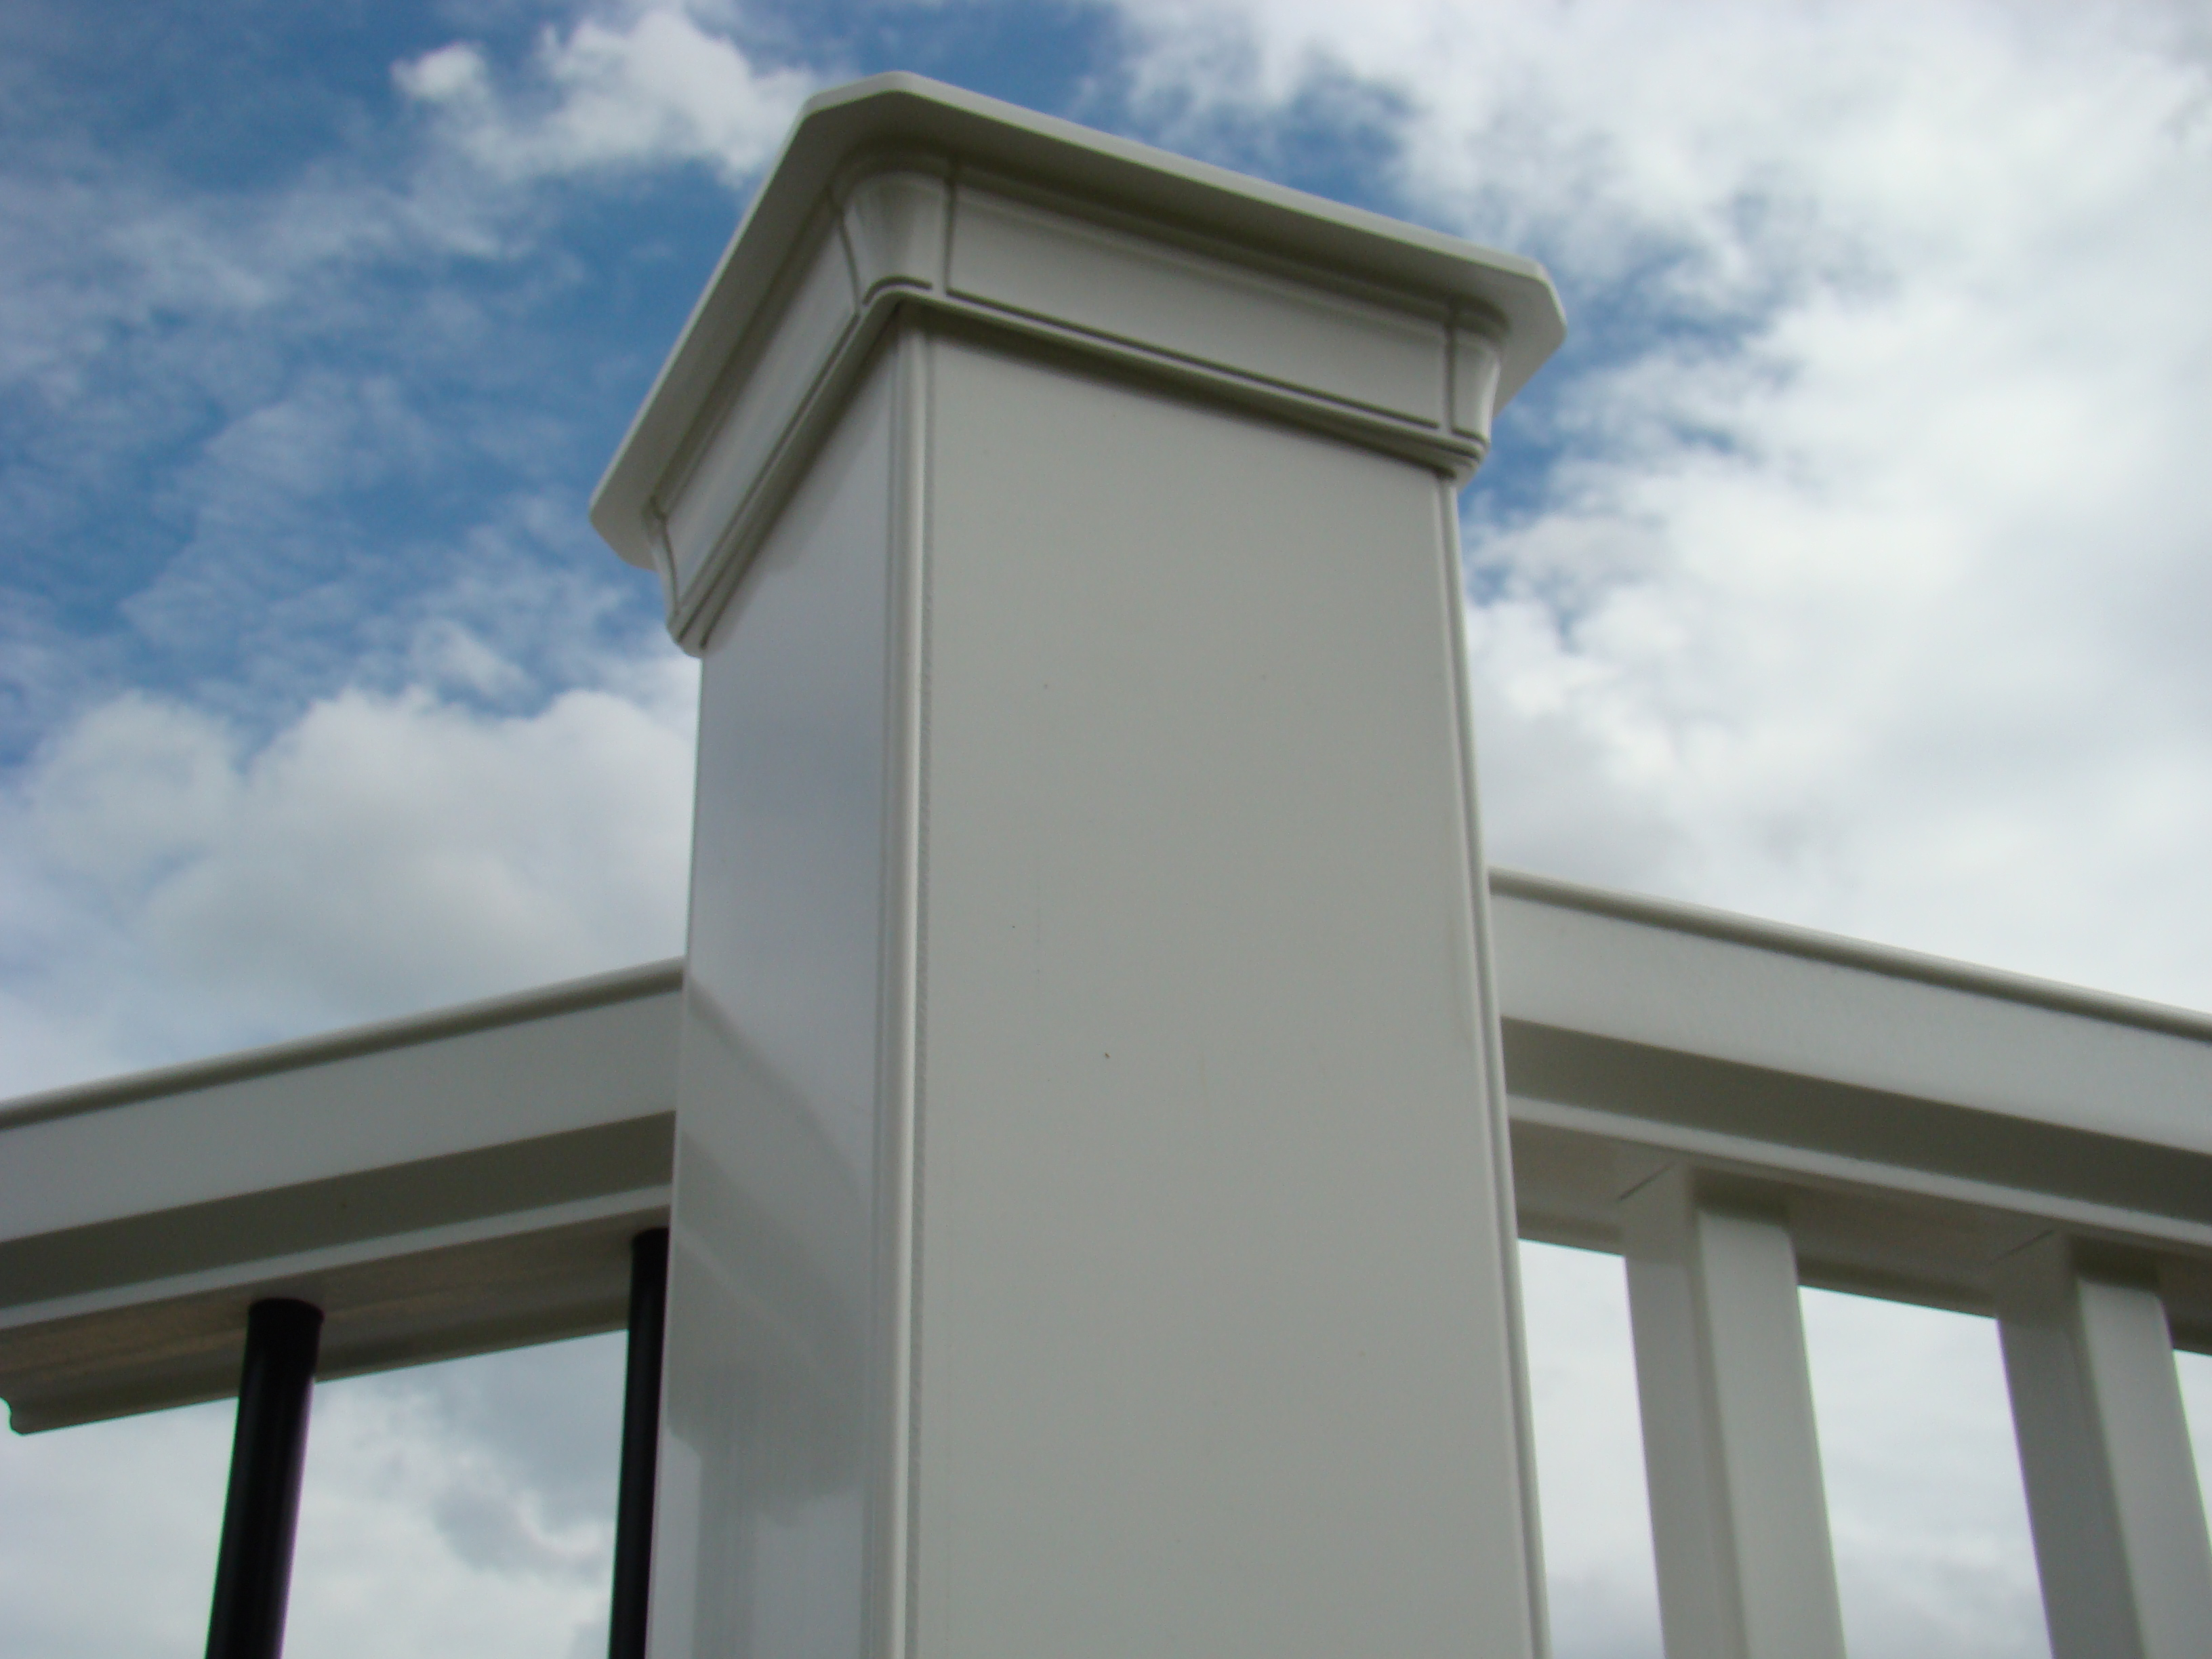 Fiberon Introduces New Decking and Railing Products for 2013